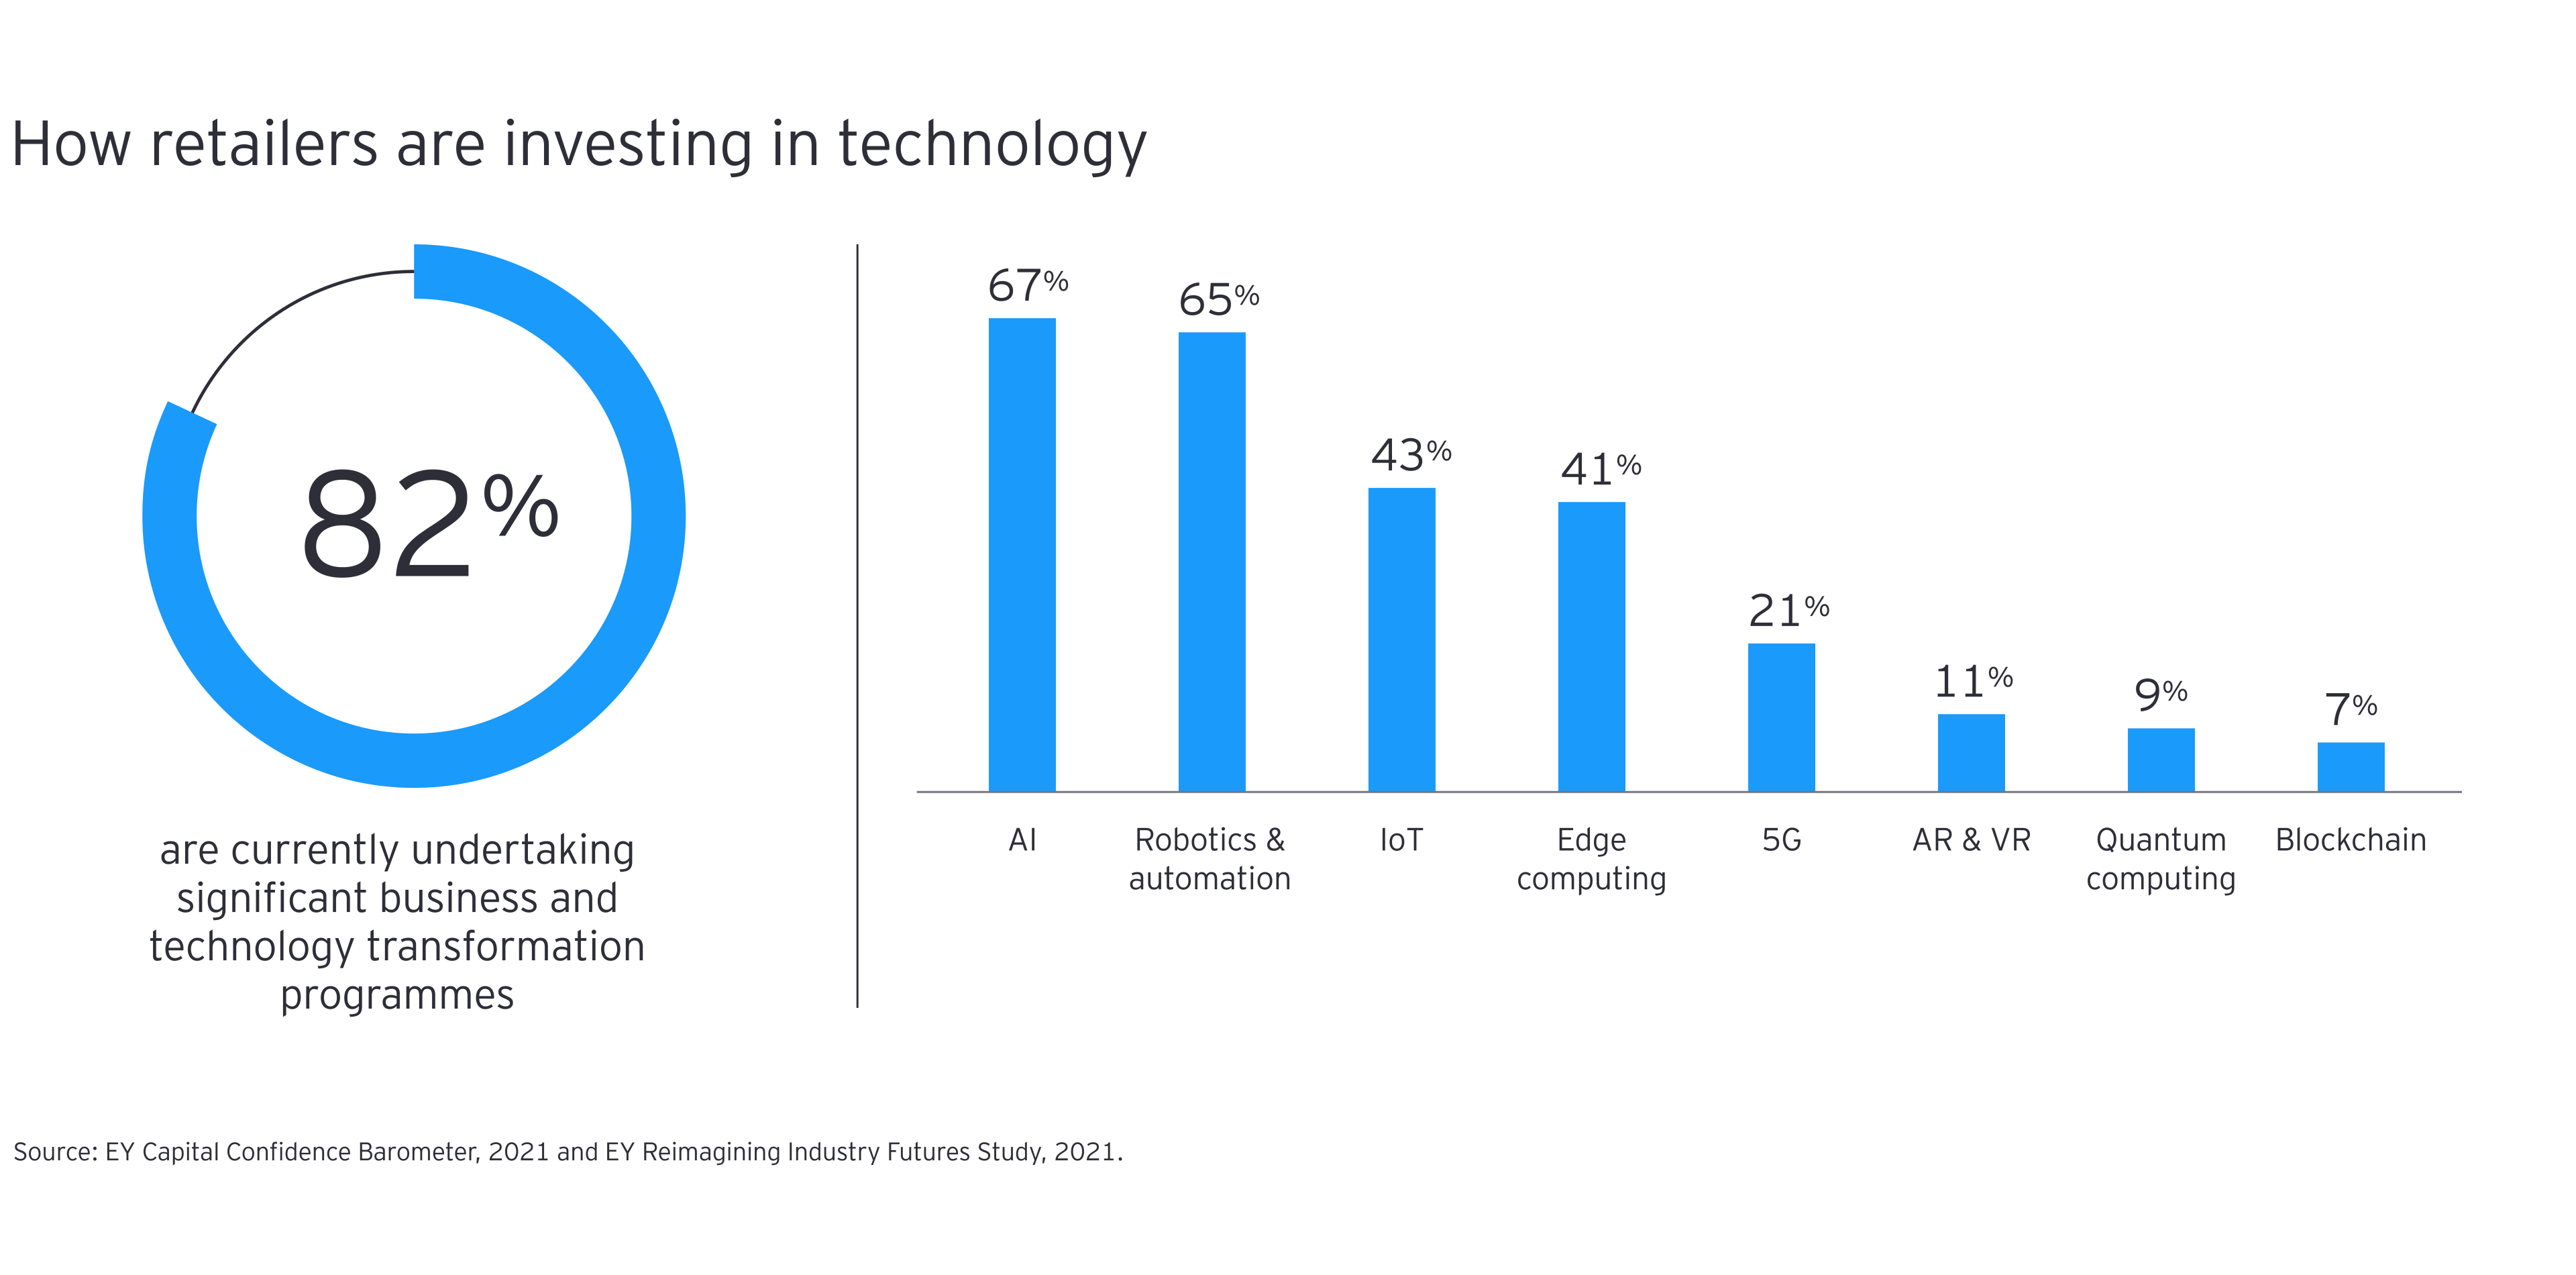 Graphic showing how retailers are investing in technology